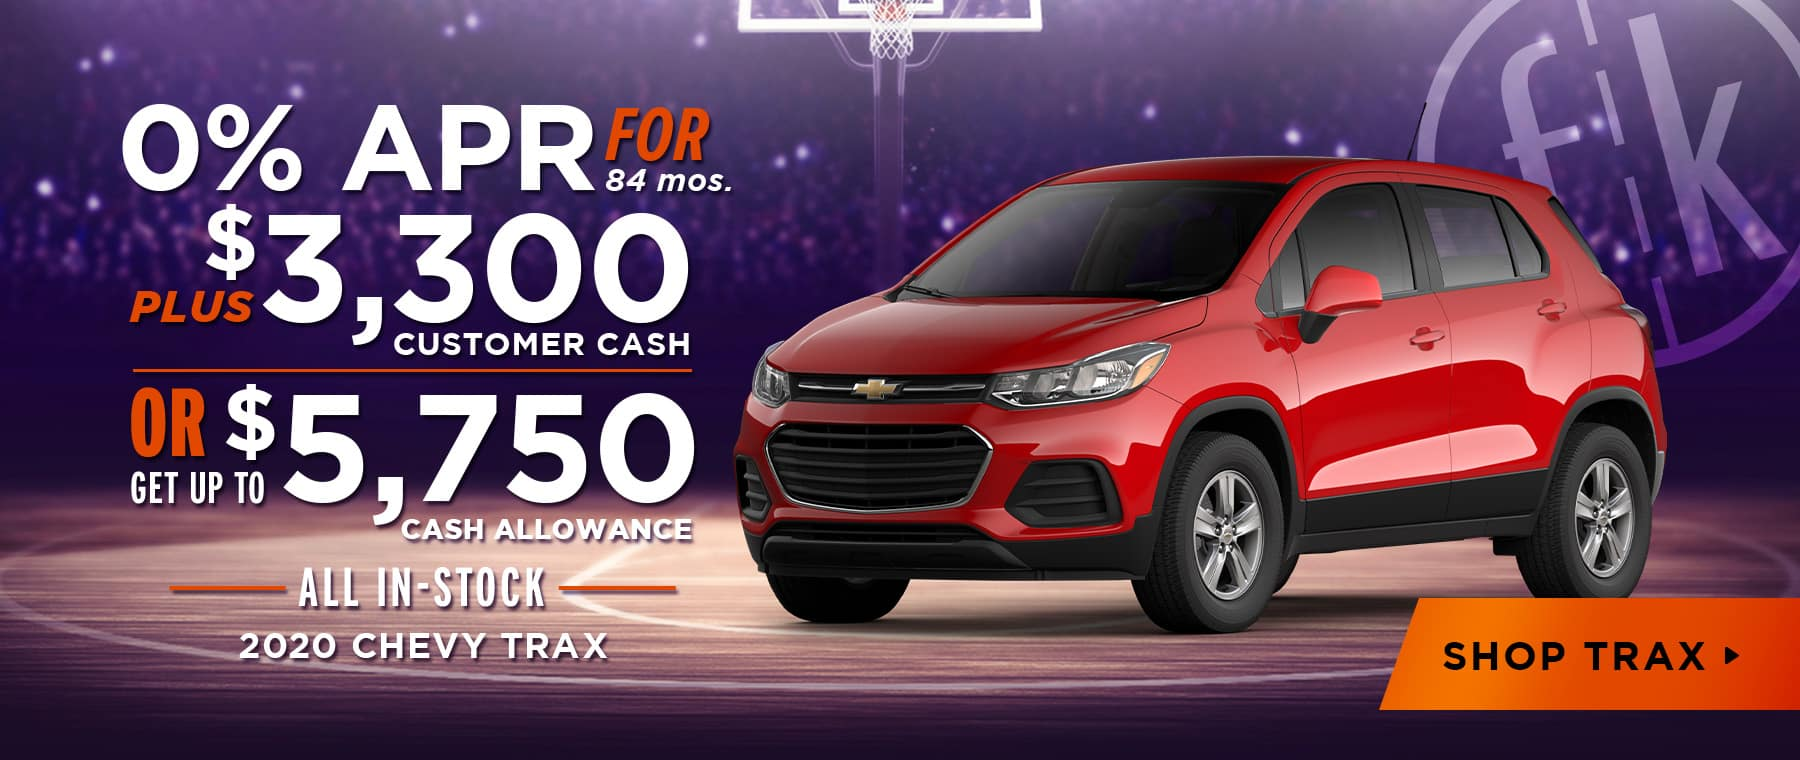 2020 Trax 0% for 84 mos + $3,300 Customer Cash OR Up To $5,750 Cash Allowance